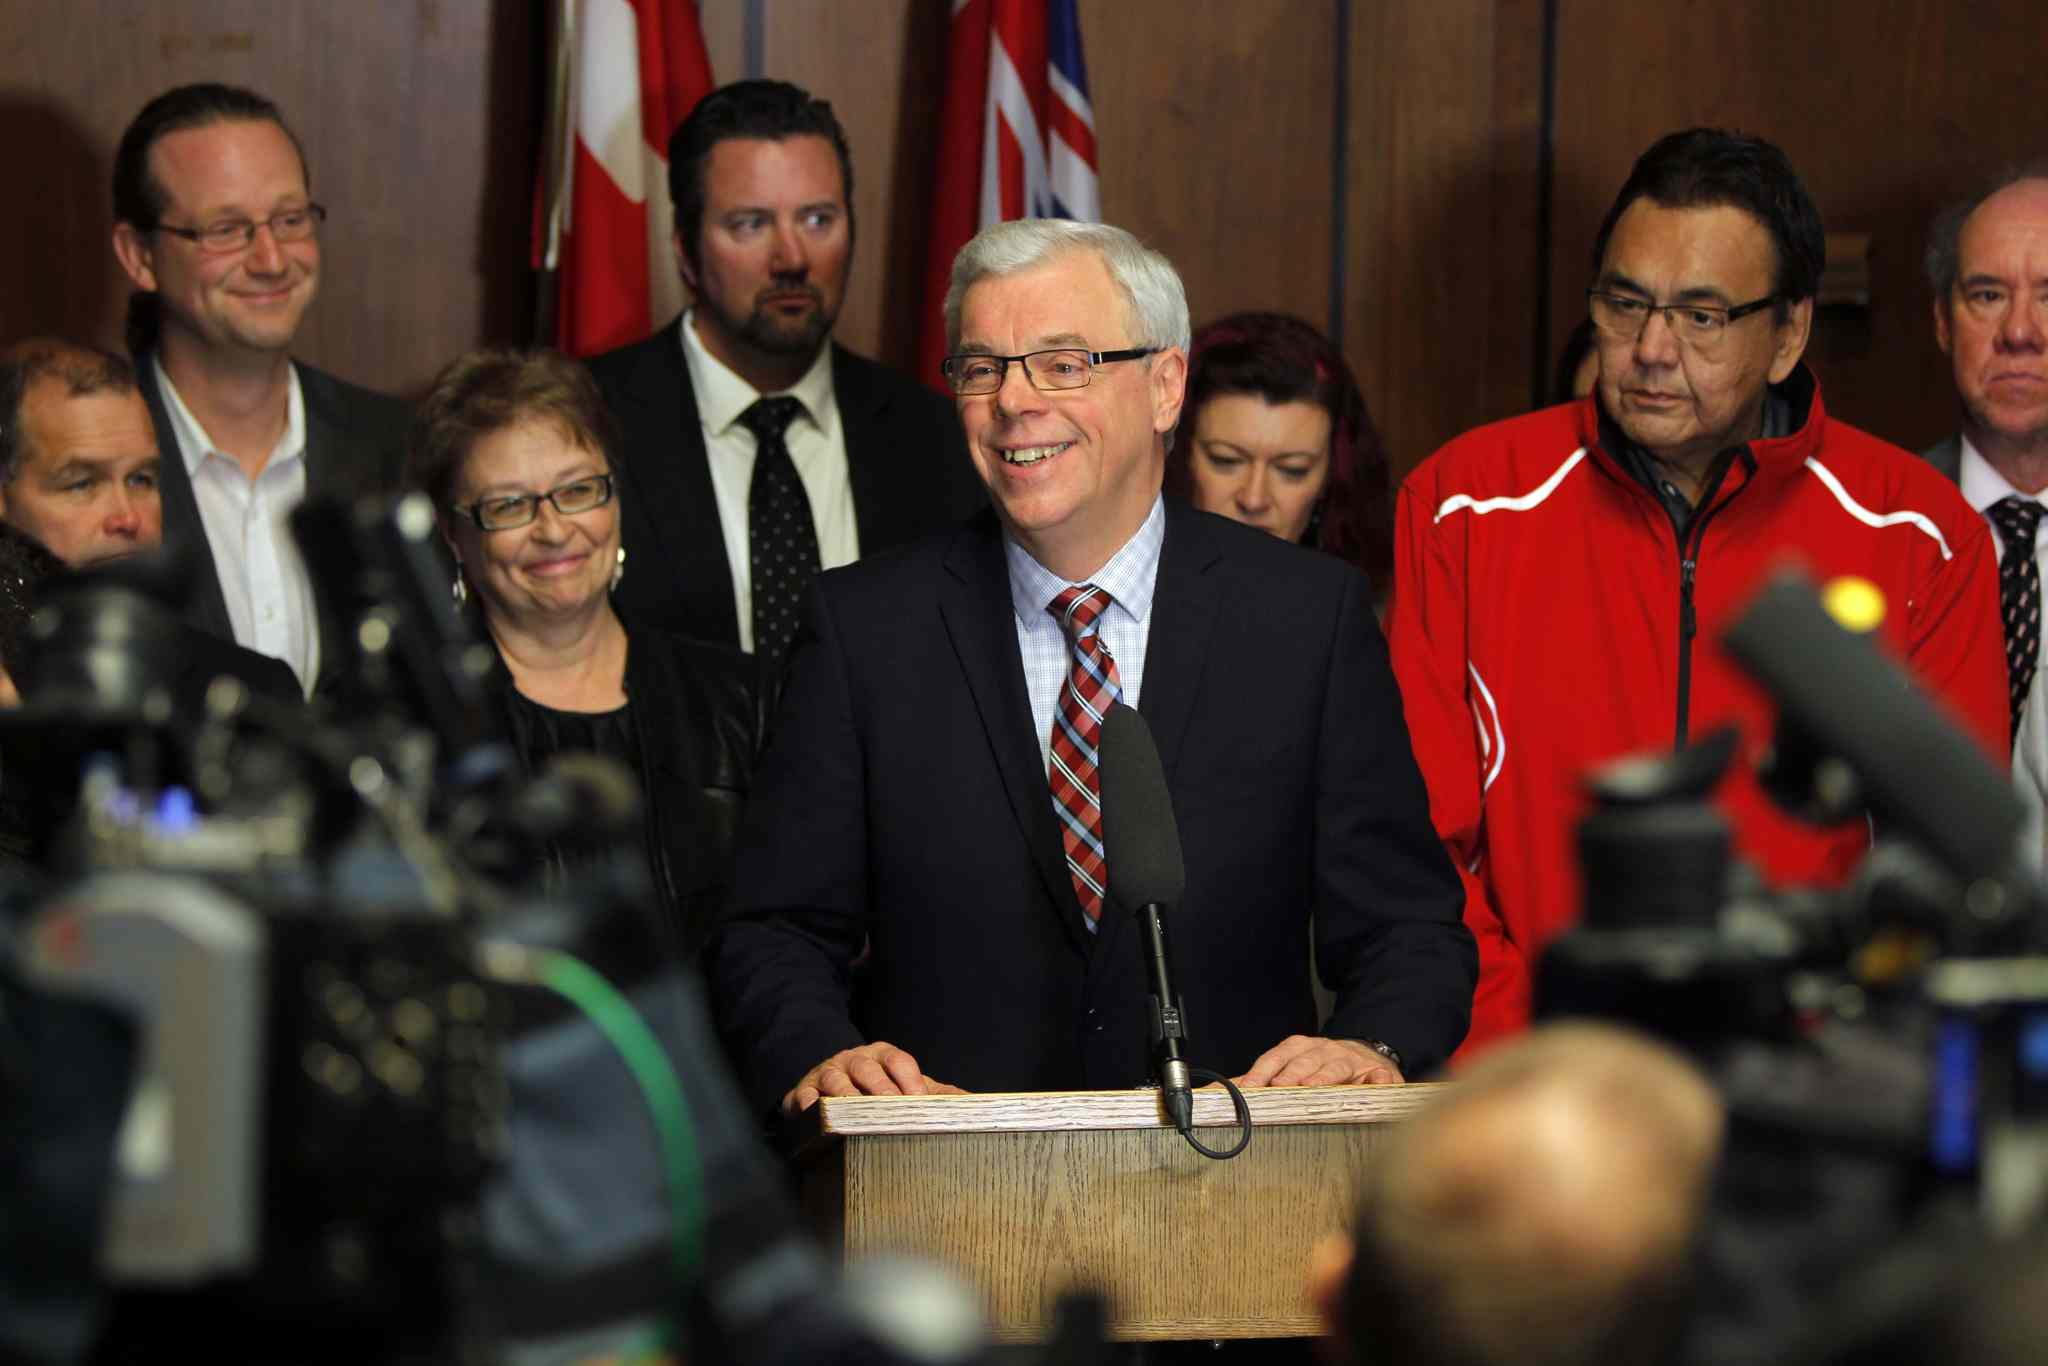 Premier Greg Selinger is supported by 15 members of his caucus as he announced Oct. 28 he is staying on as NDP leader despite pressure from five outspoken cabinet ministers who want him to quit.